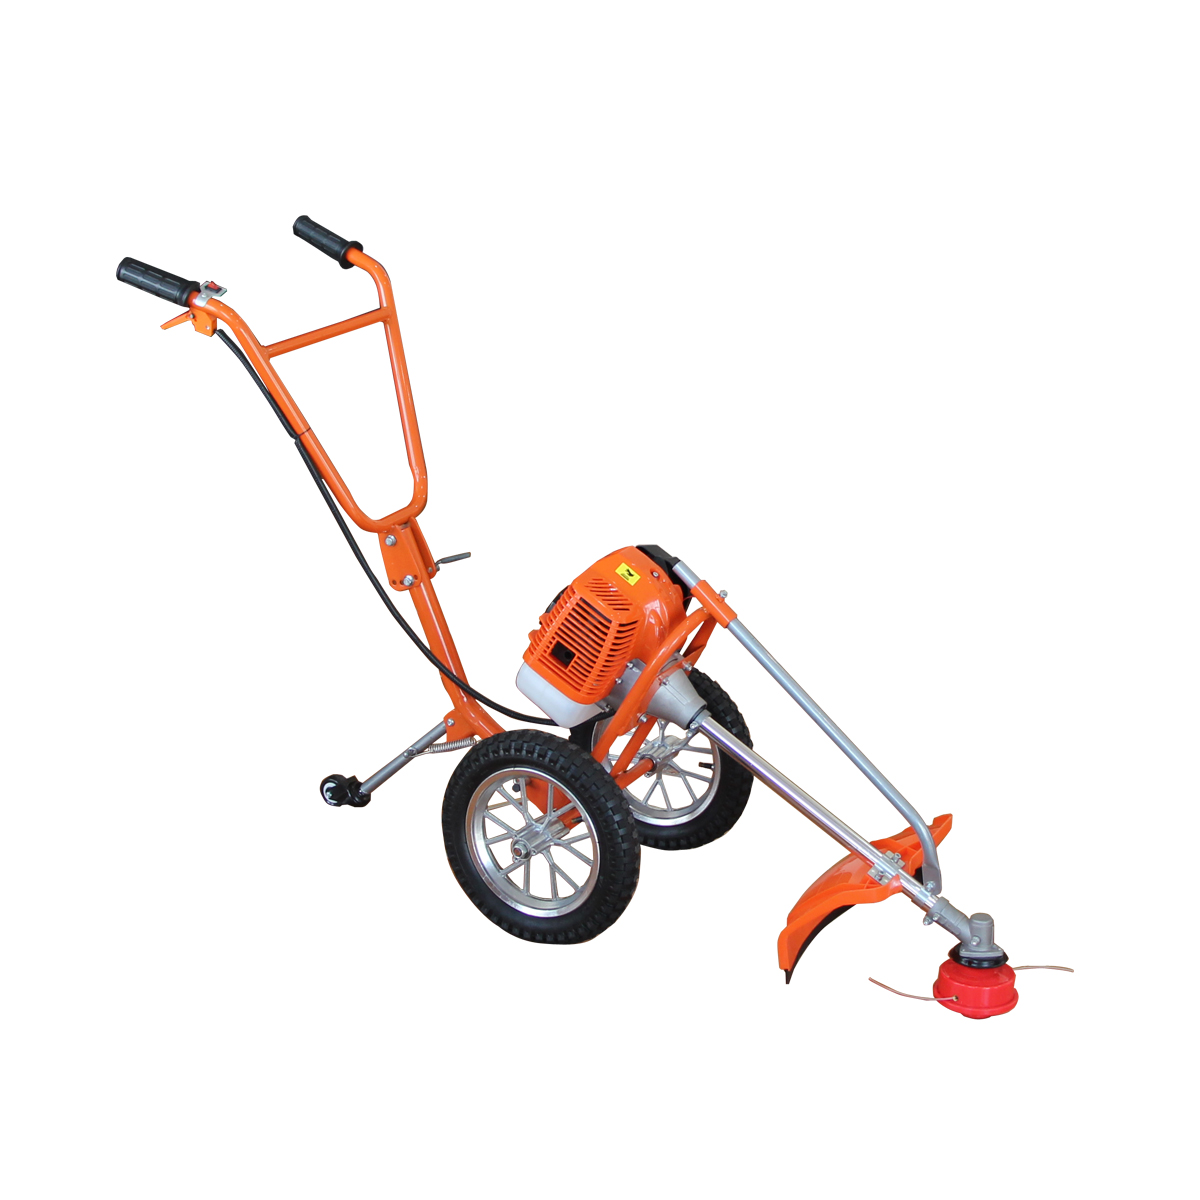 honda brush cutter, brush cutter Honda, grass cutting machine, price list bush cutter, brush cutter spare parts, brush cutter price in kerala, grass cutter uses and function, oleo mac spare parts, stihl brush cutter, india brush cutter engine, stihl electric brush cutter, what is a brush cutter used for, brush cutter Wikipedia, brush cutter cultivator attachment, agripro brush cutter